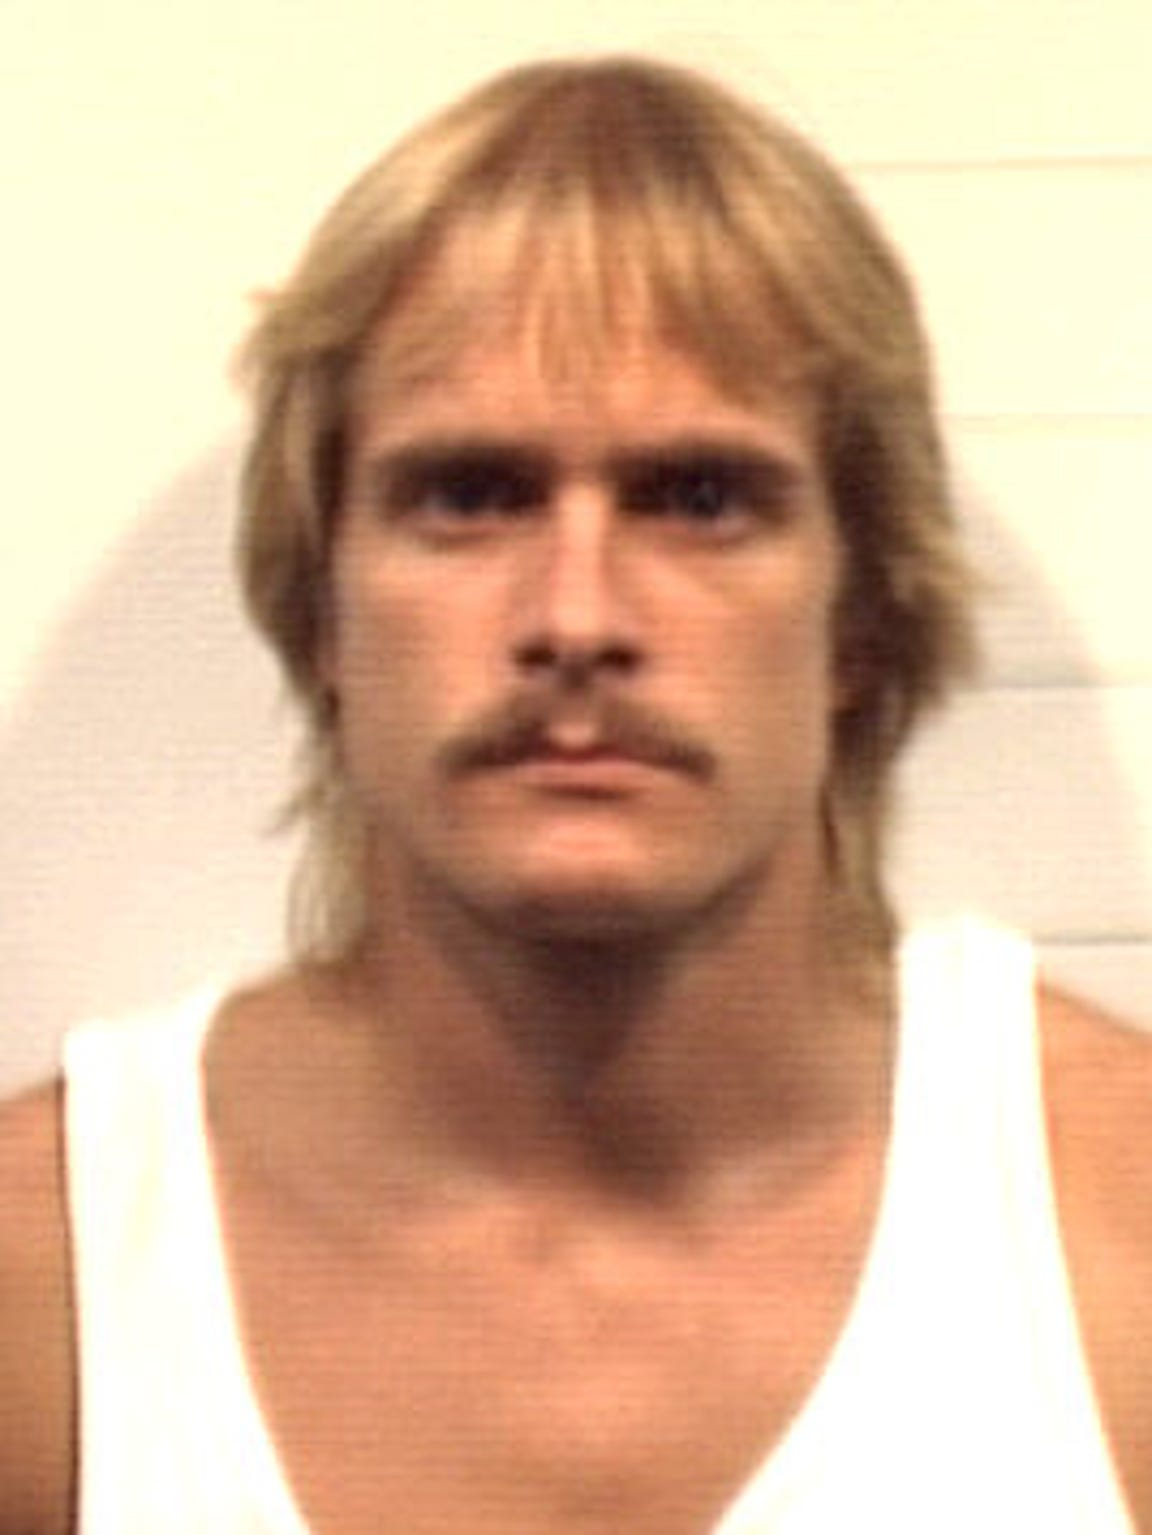 Mugshot of Bryan Kaseno taken Aug. 26, 1992.